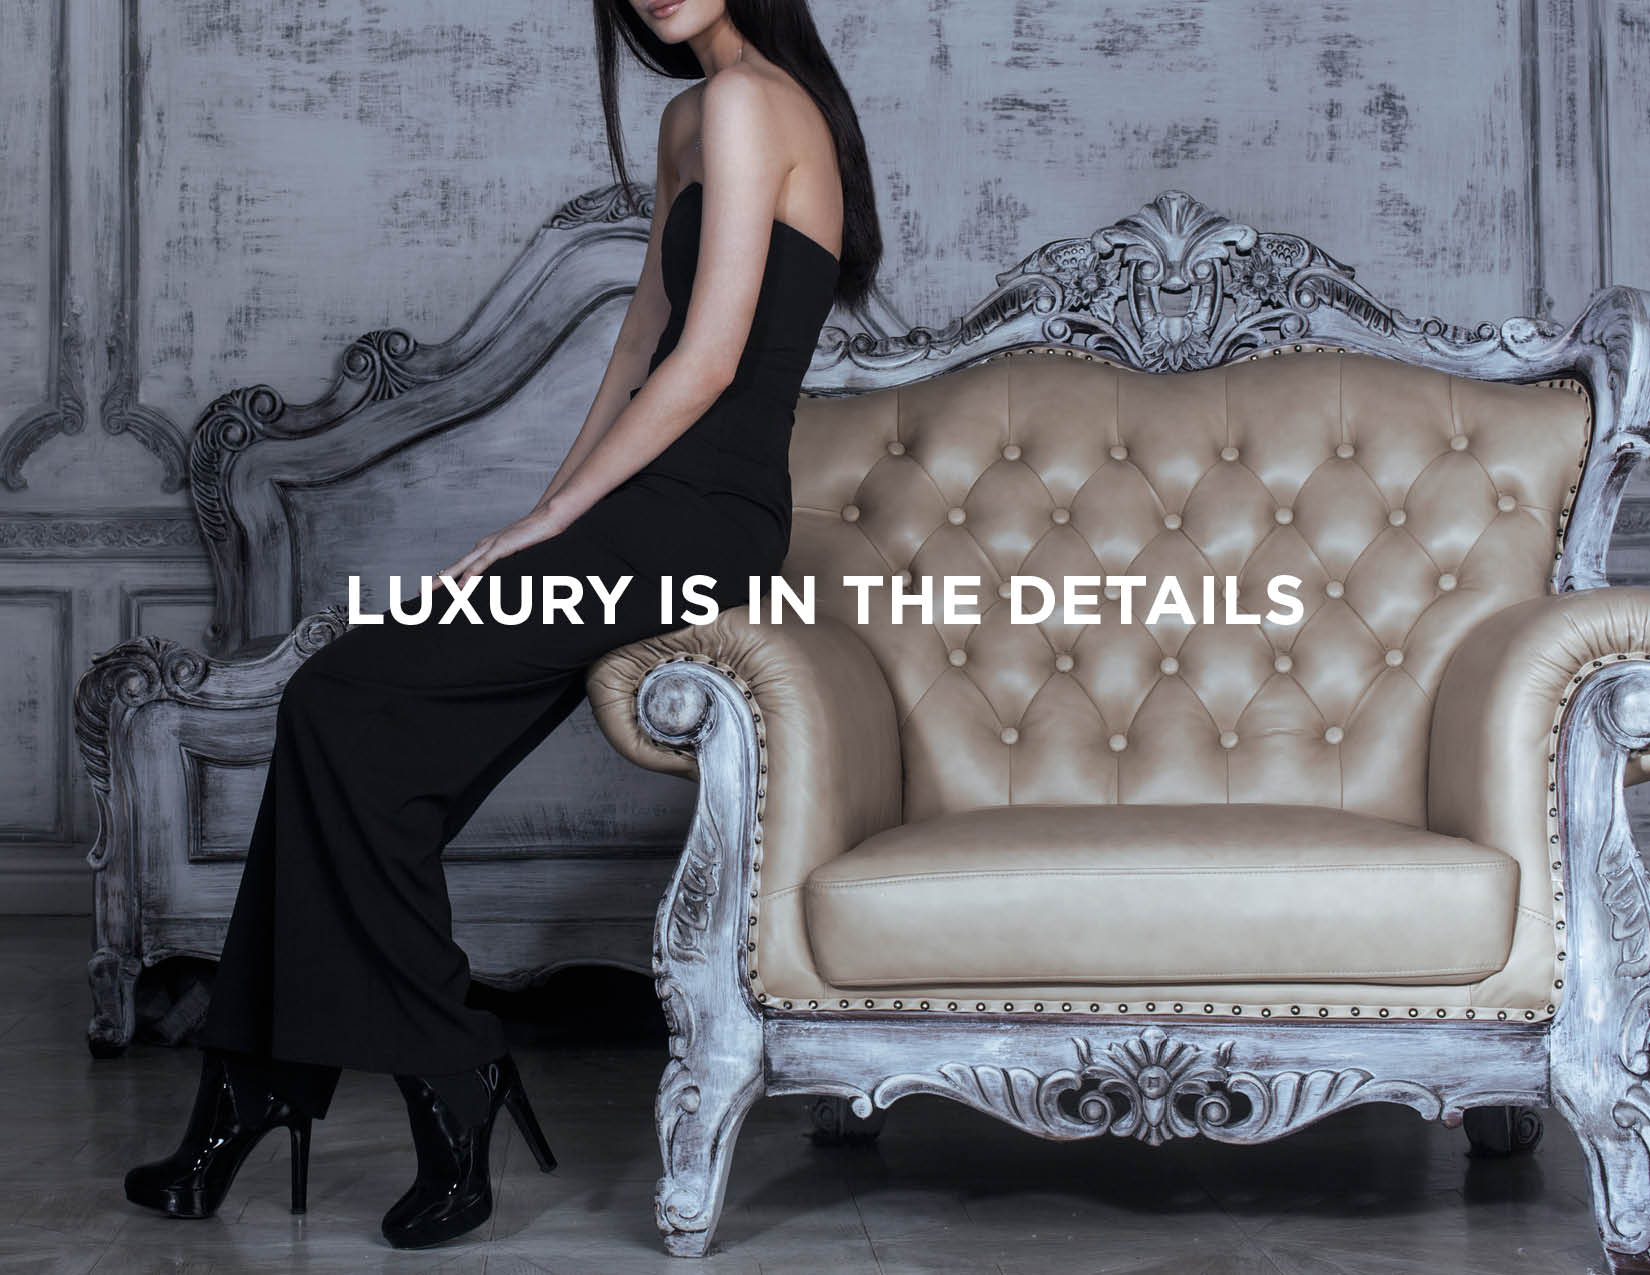 After extensive research, we developed our concept – Luxury Is In the Details.